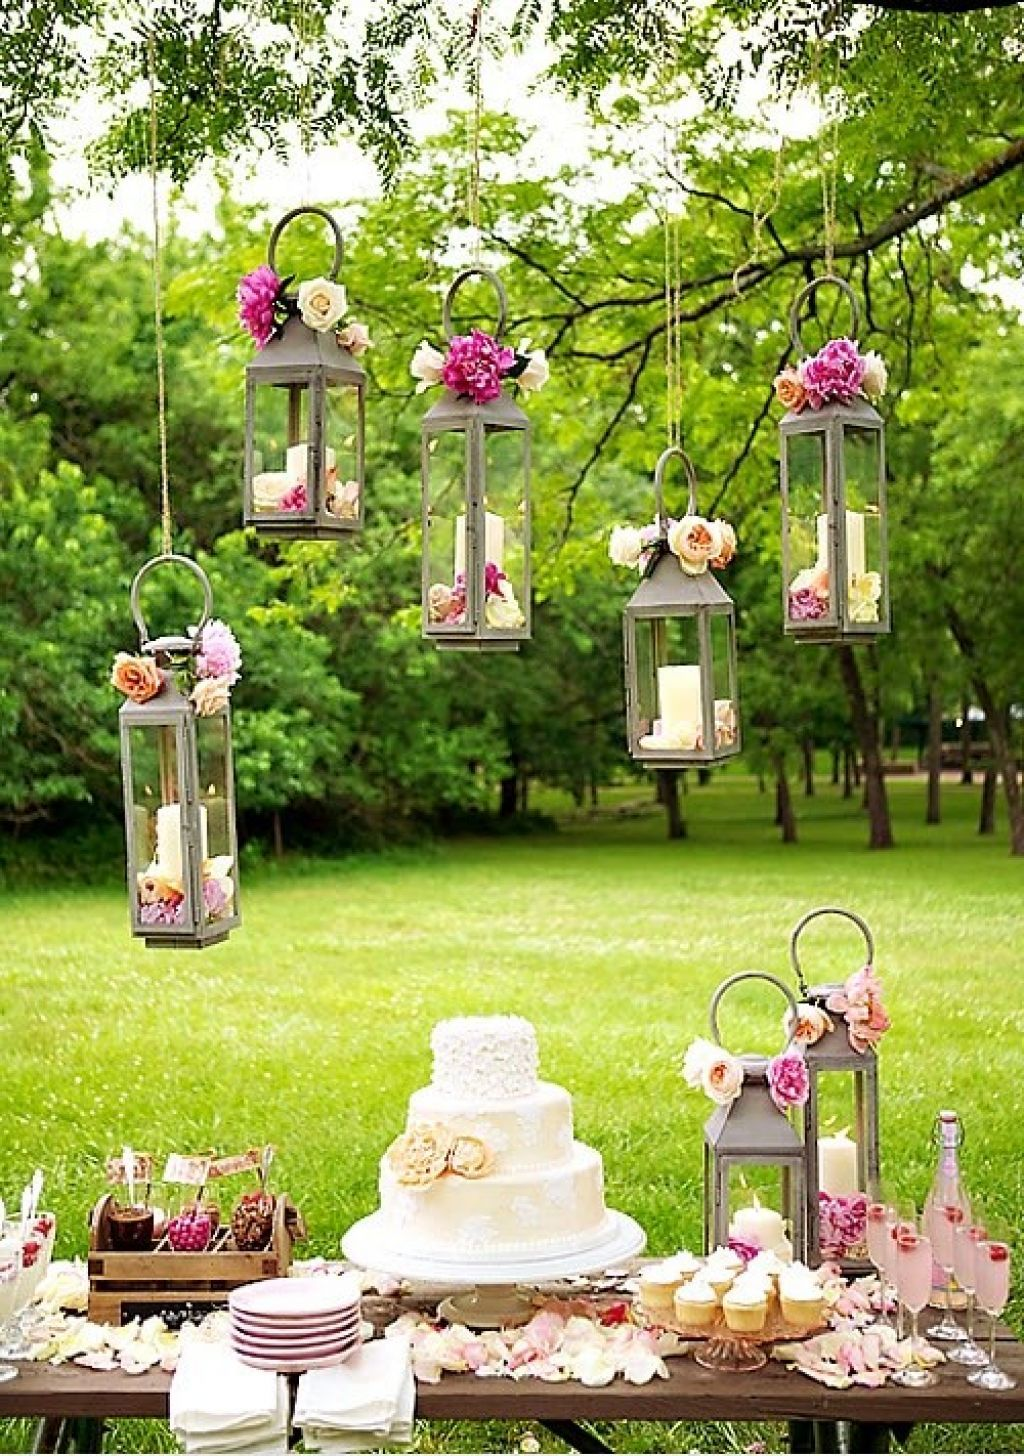 Yard wedding decoration ideas  garden party ideas  Google Search  party decor  Pinterest